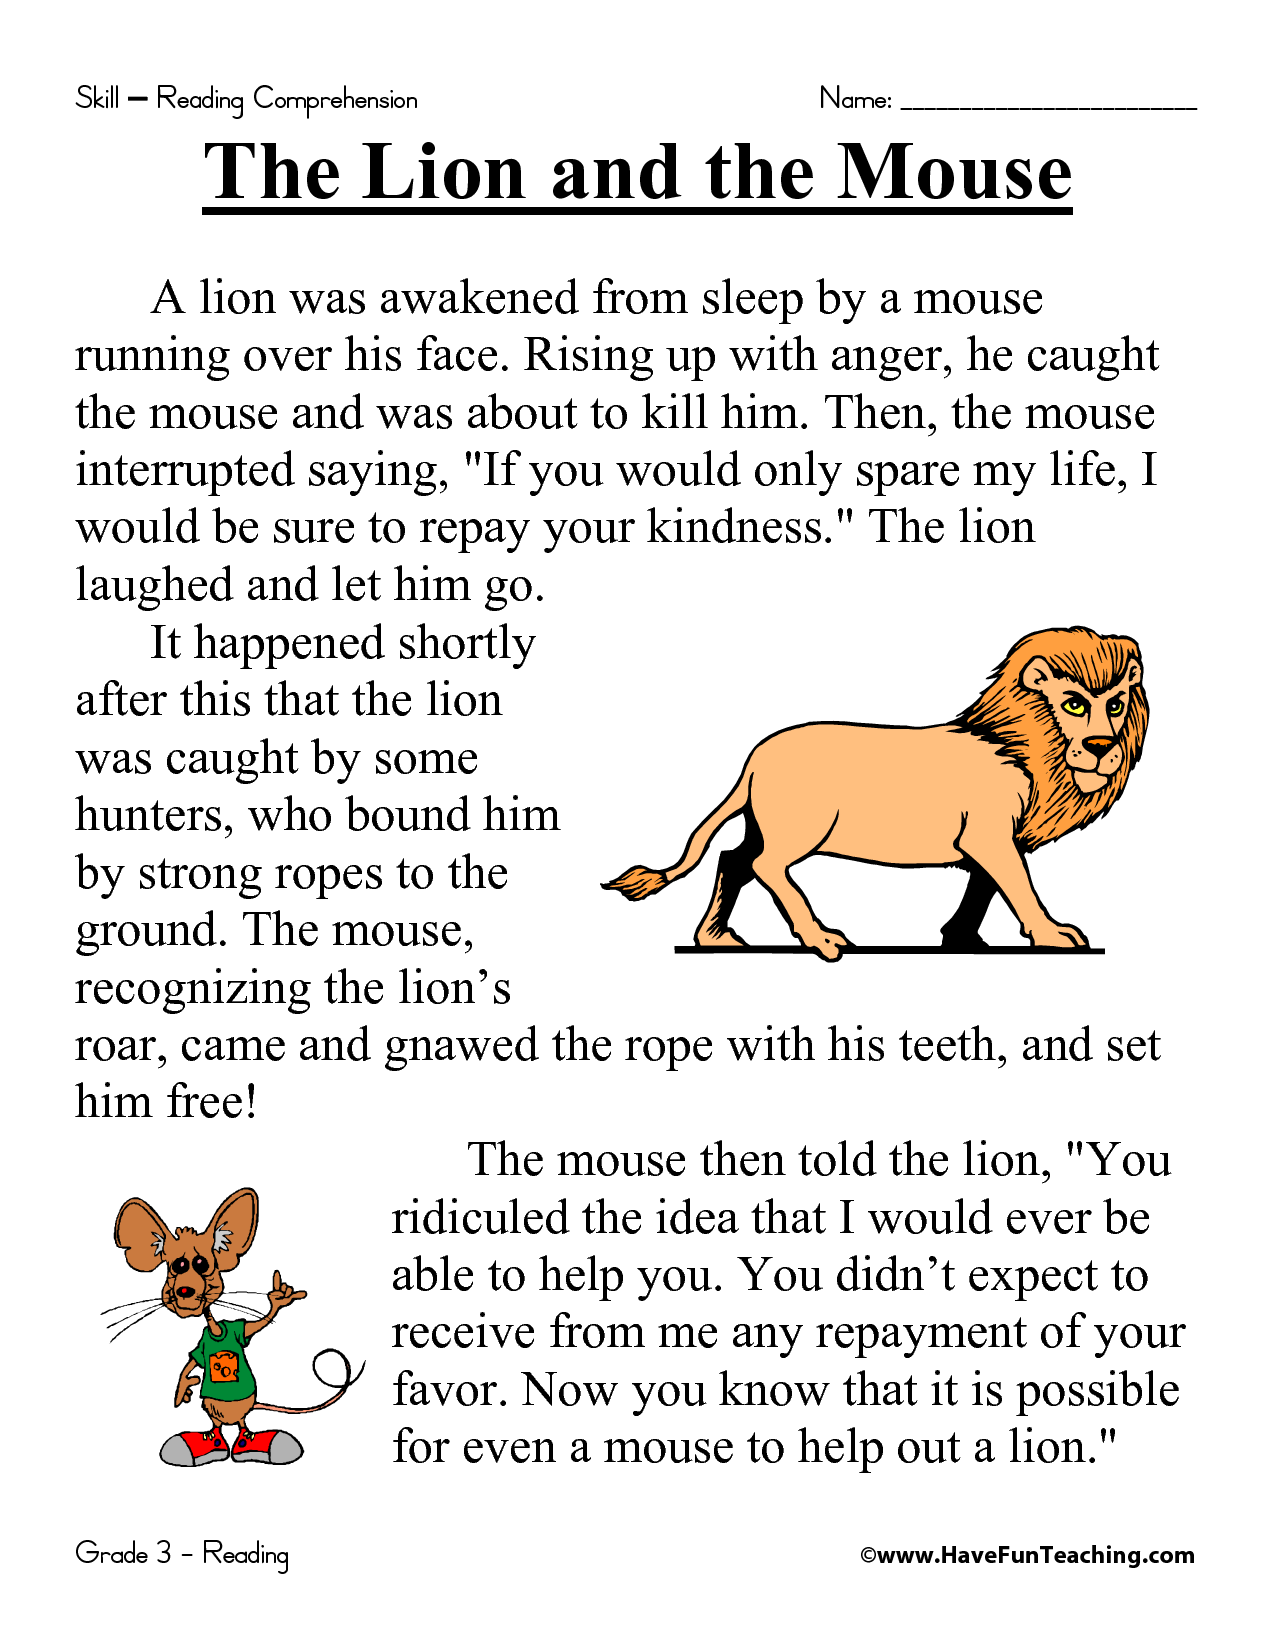 Worksheet Reading Comprehension 4th Grade Printable printable reading comprehension worksheets inc exercises for first grade the lion and mouse worksheet